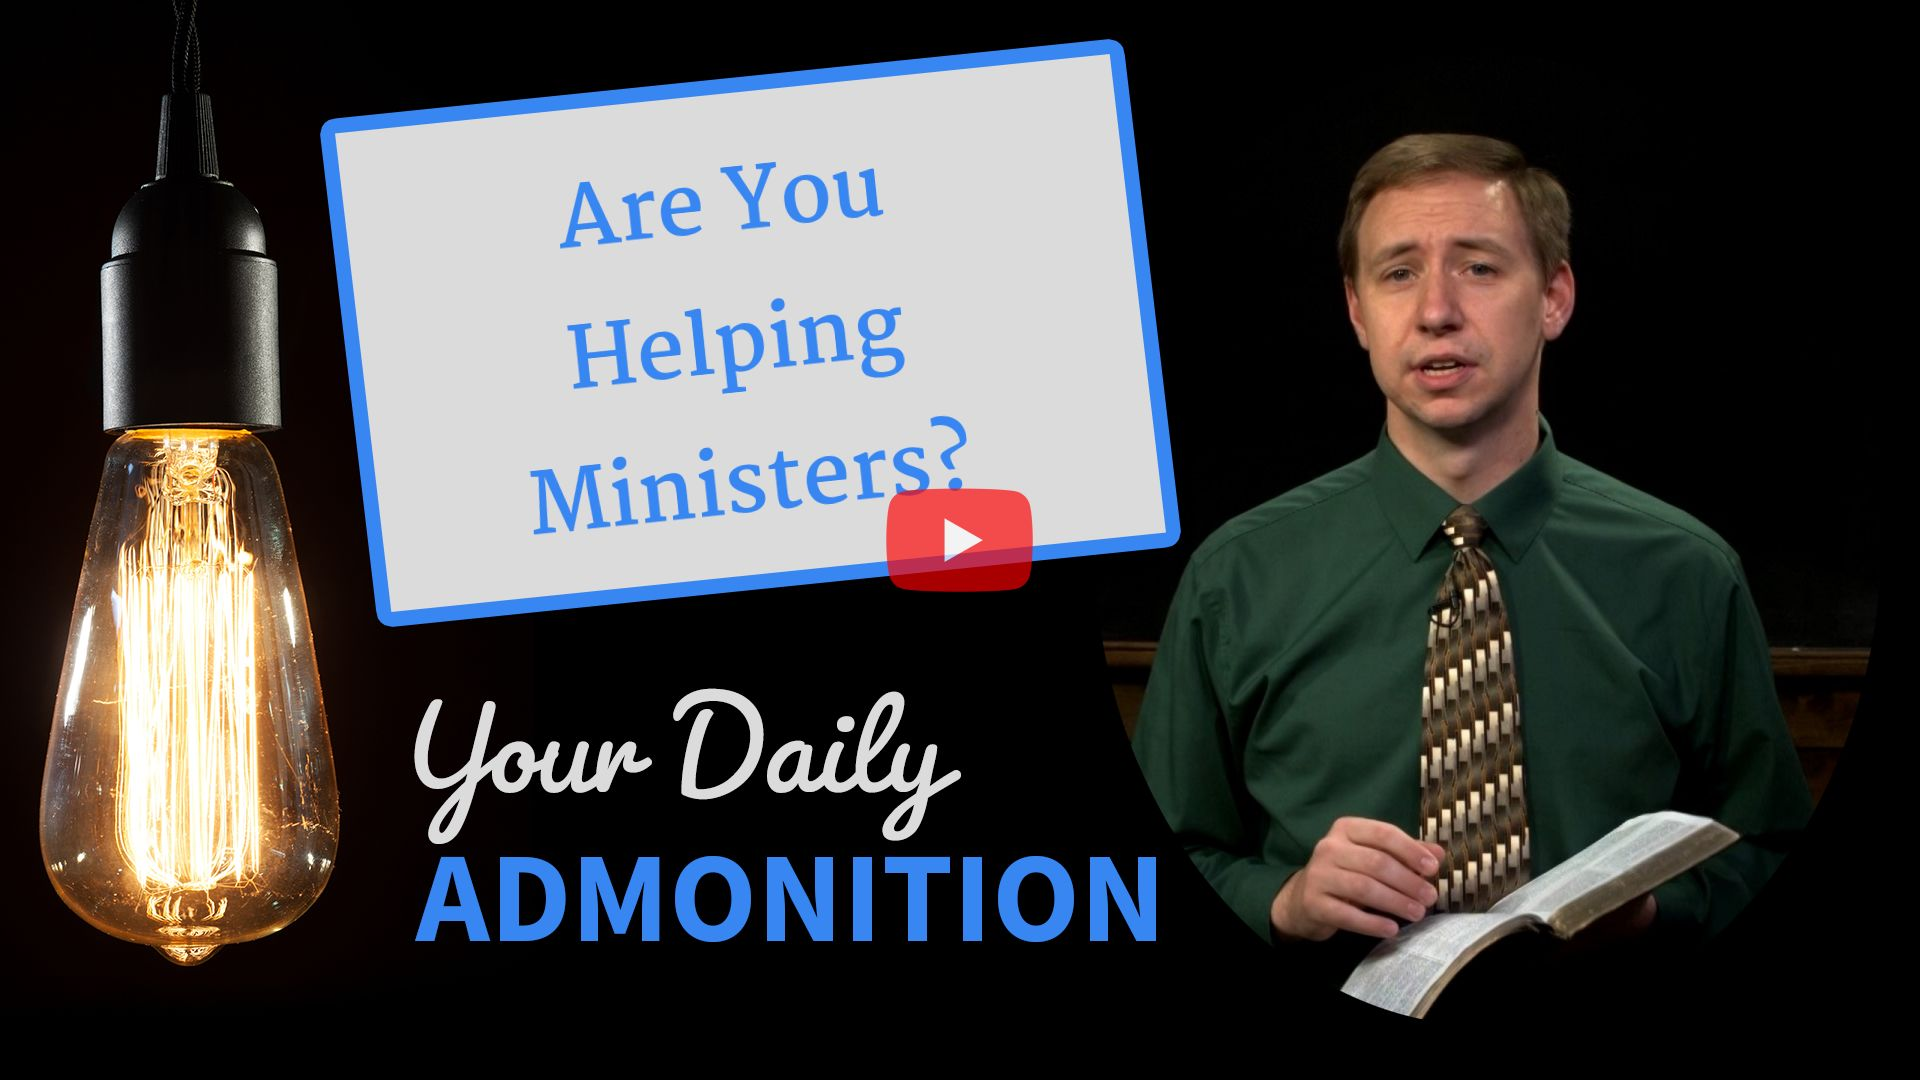 Are You Helping Ministers?